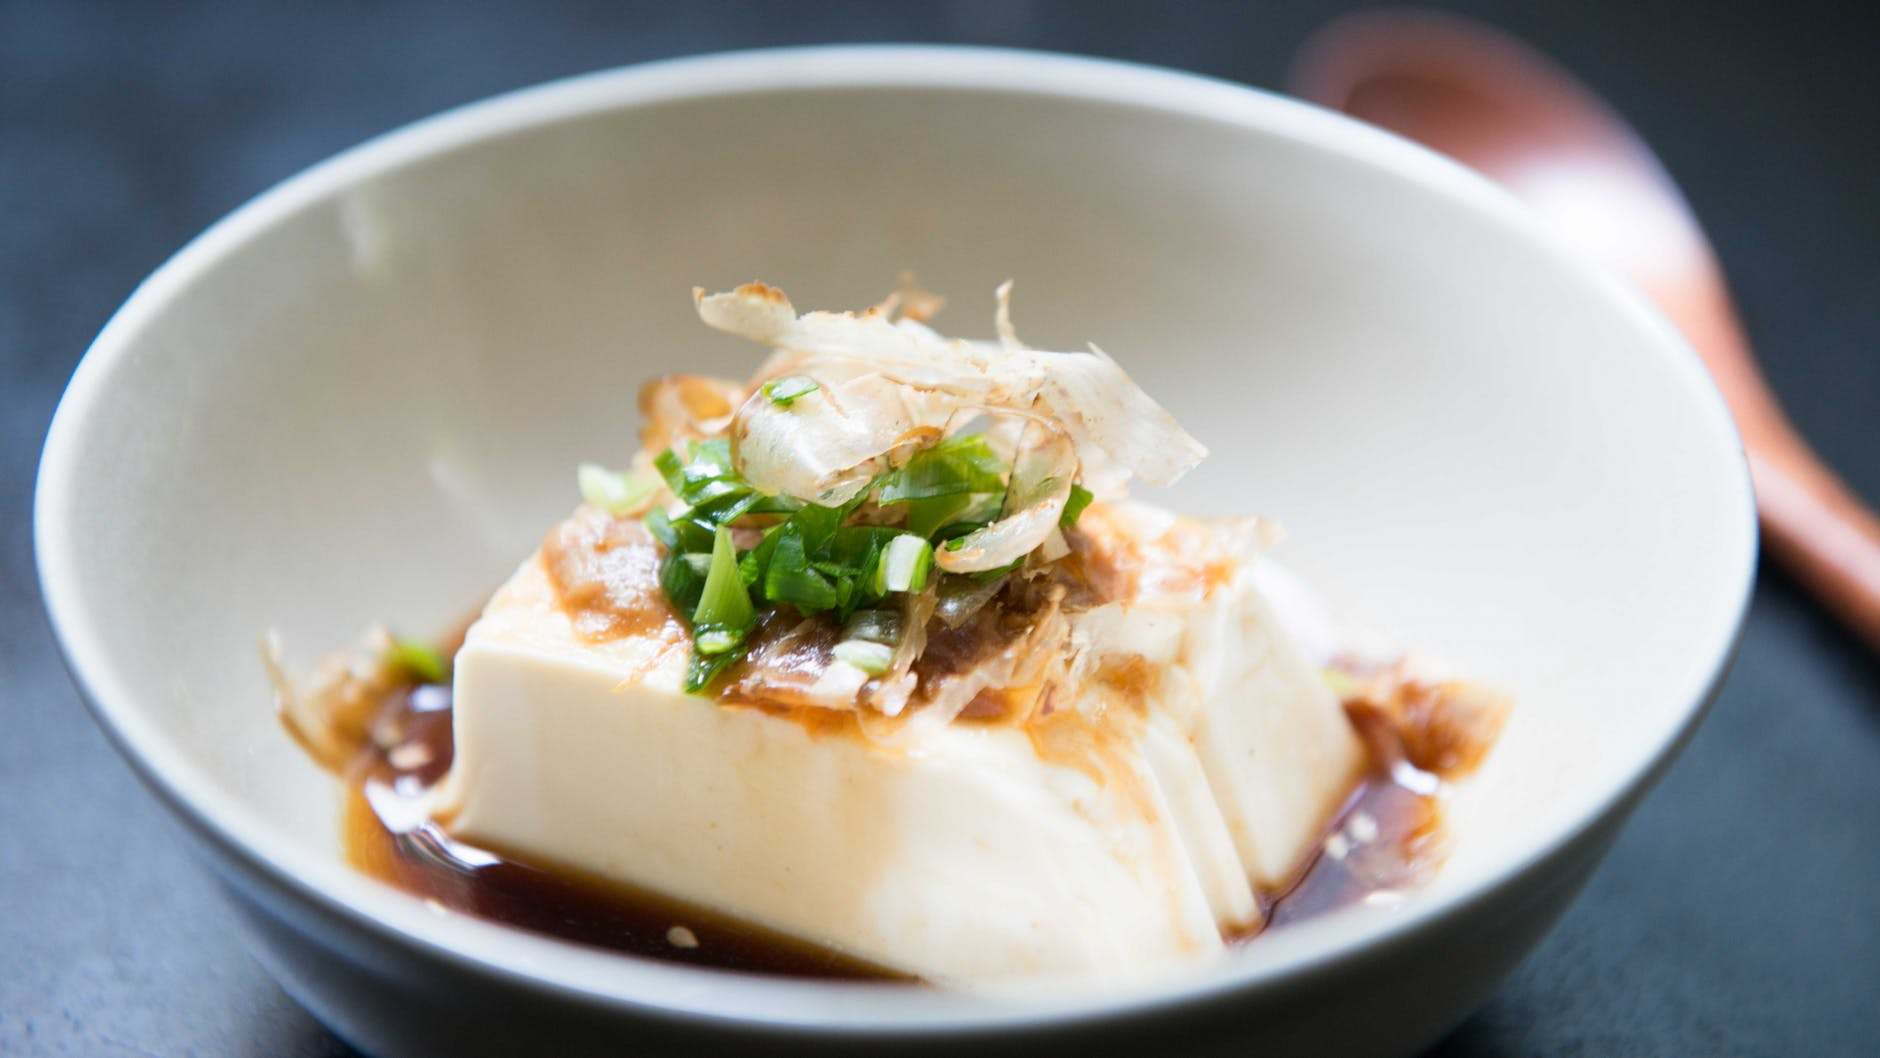 Tofu in Kyoto is a Japanese destination for foodies